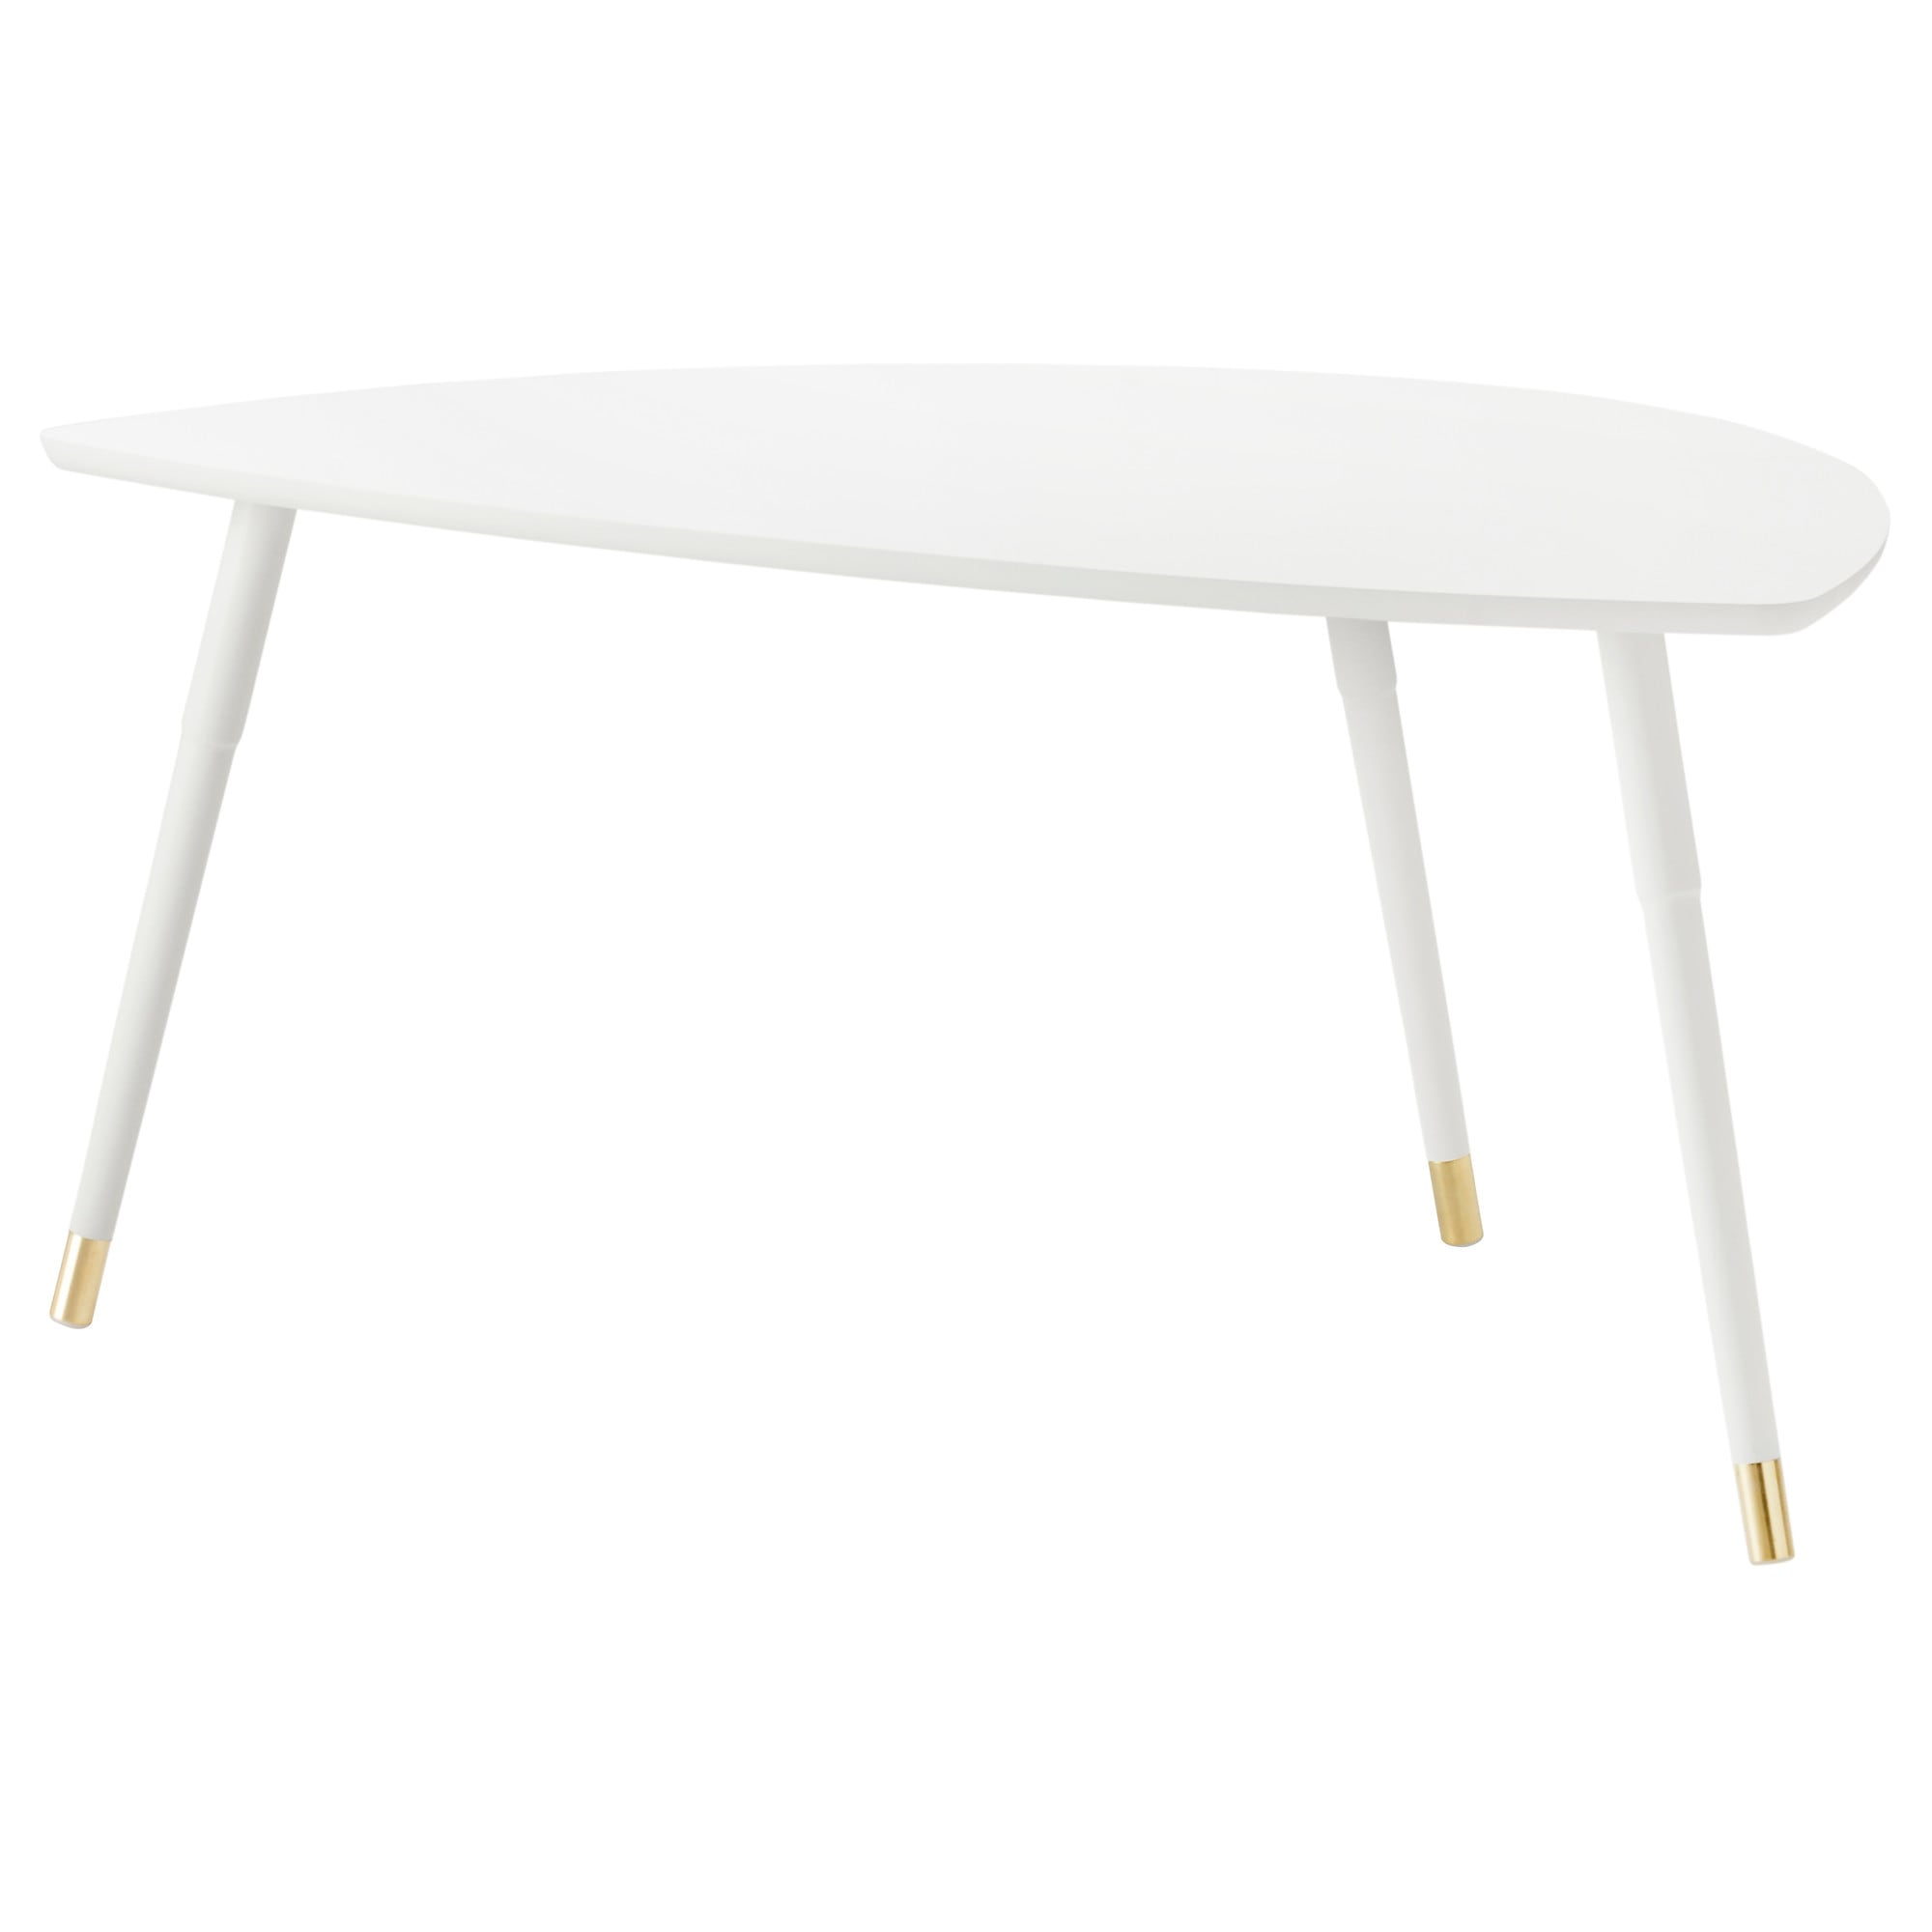 Table basse transformable chez ikea Table basse transformable ikea